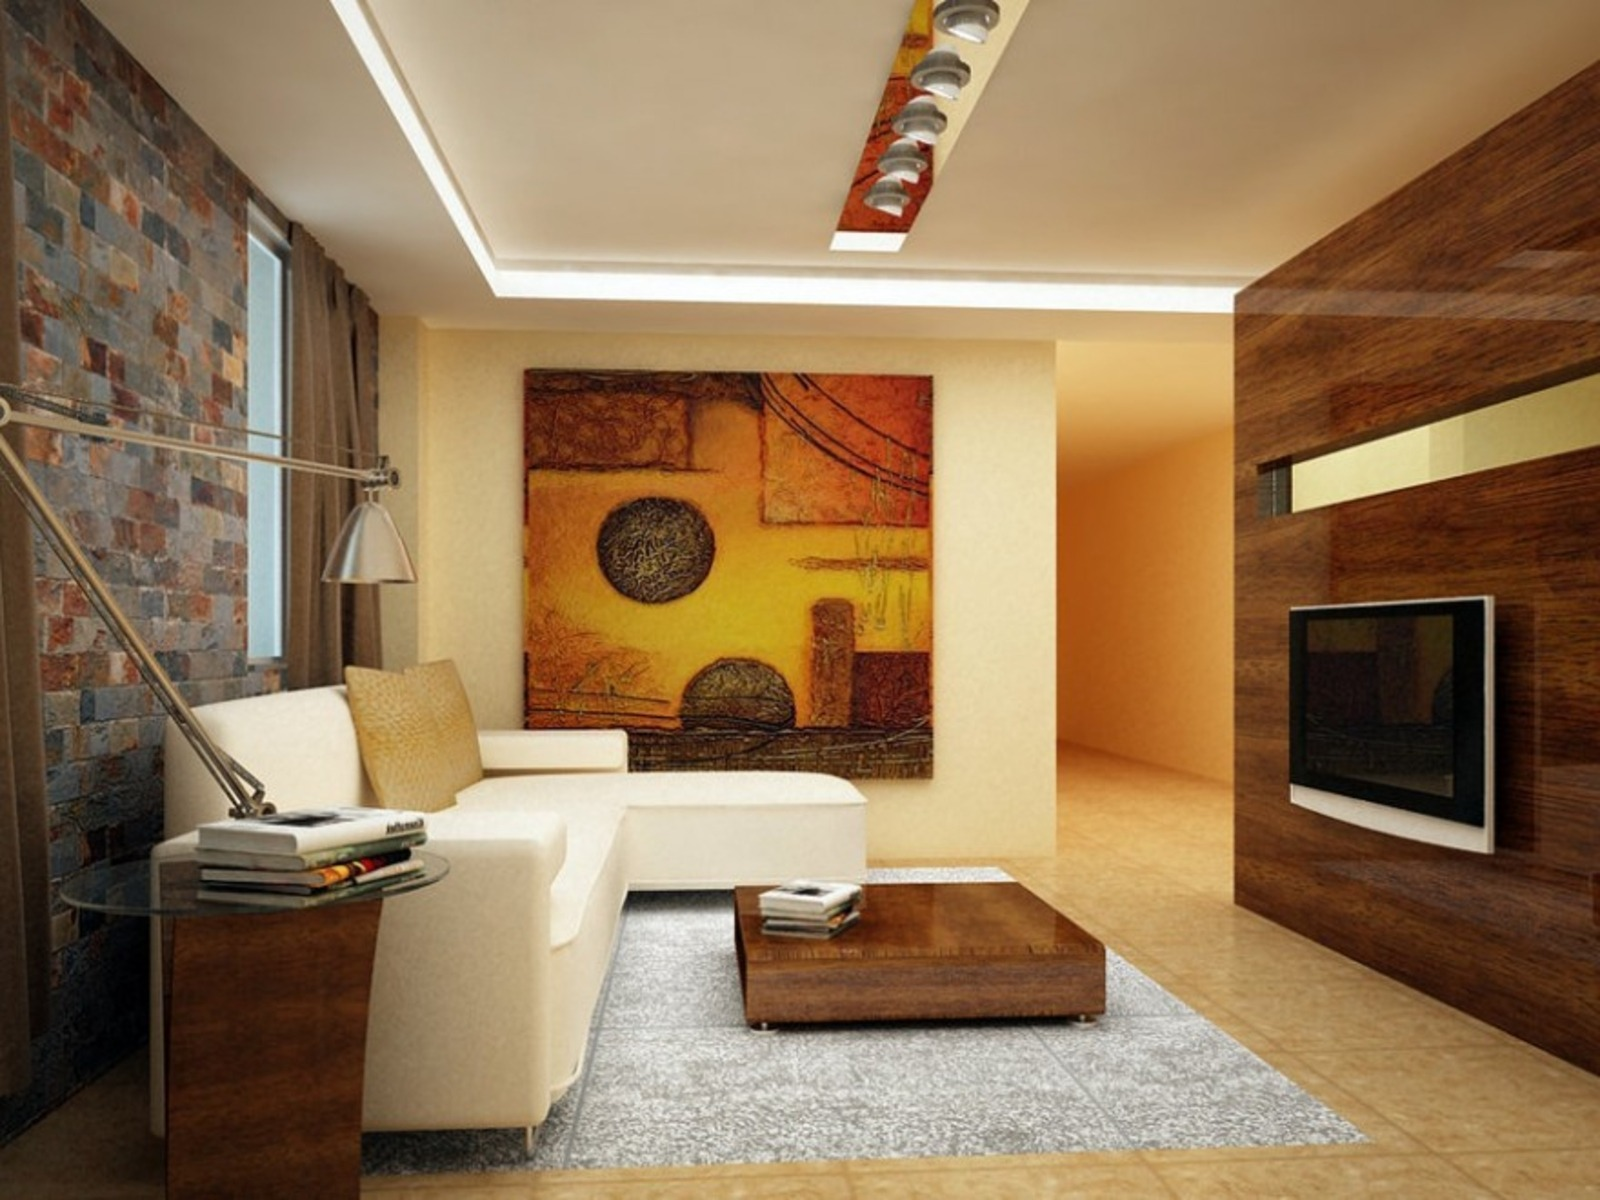 14 amazing living room designs indian style interior and - Interior design styles living room ...